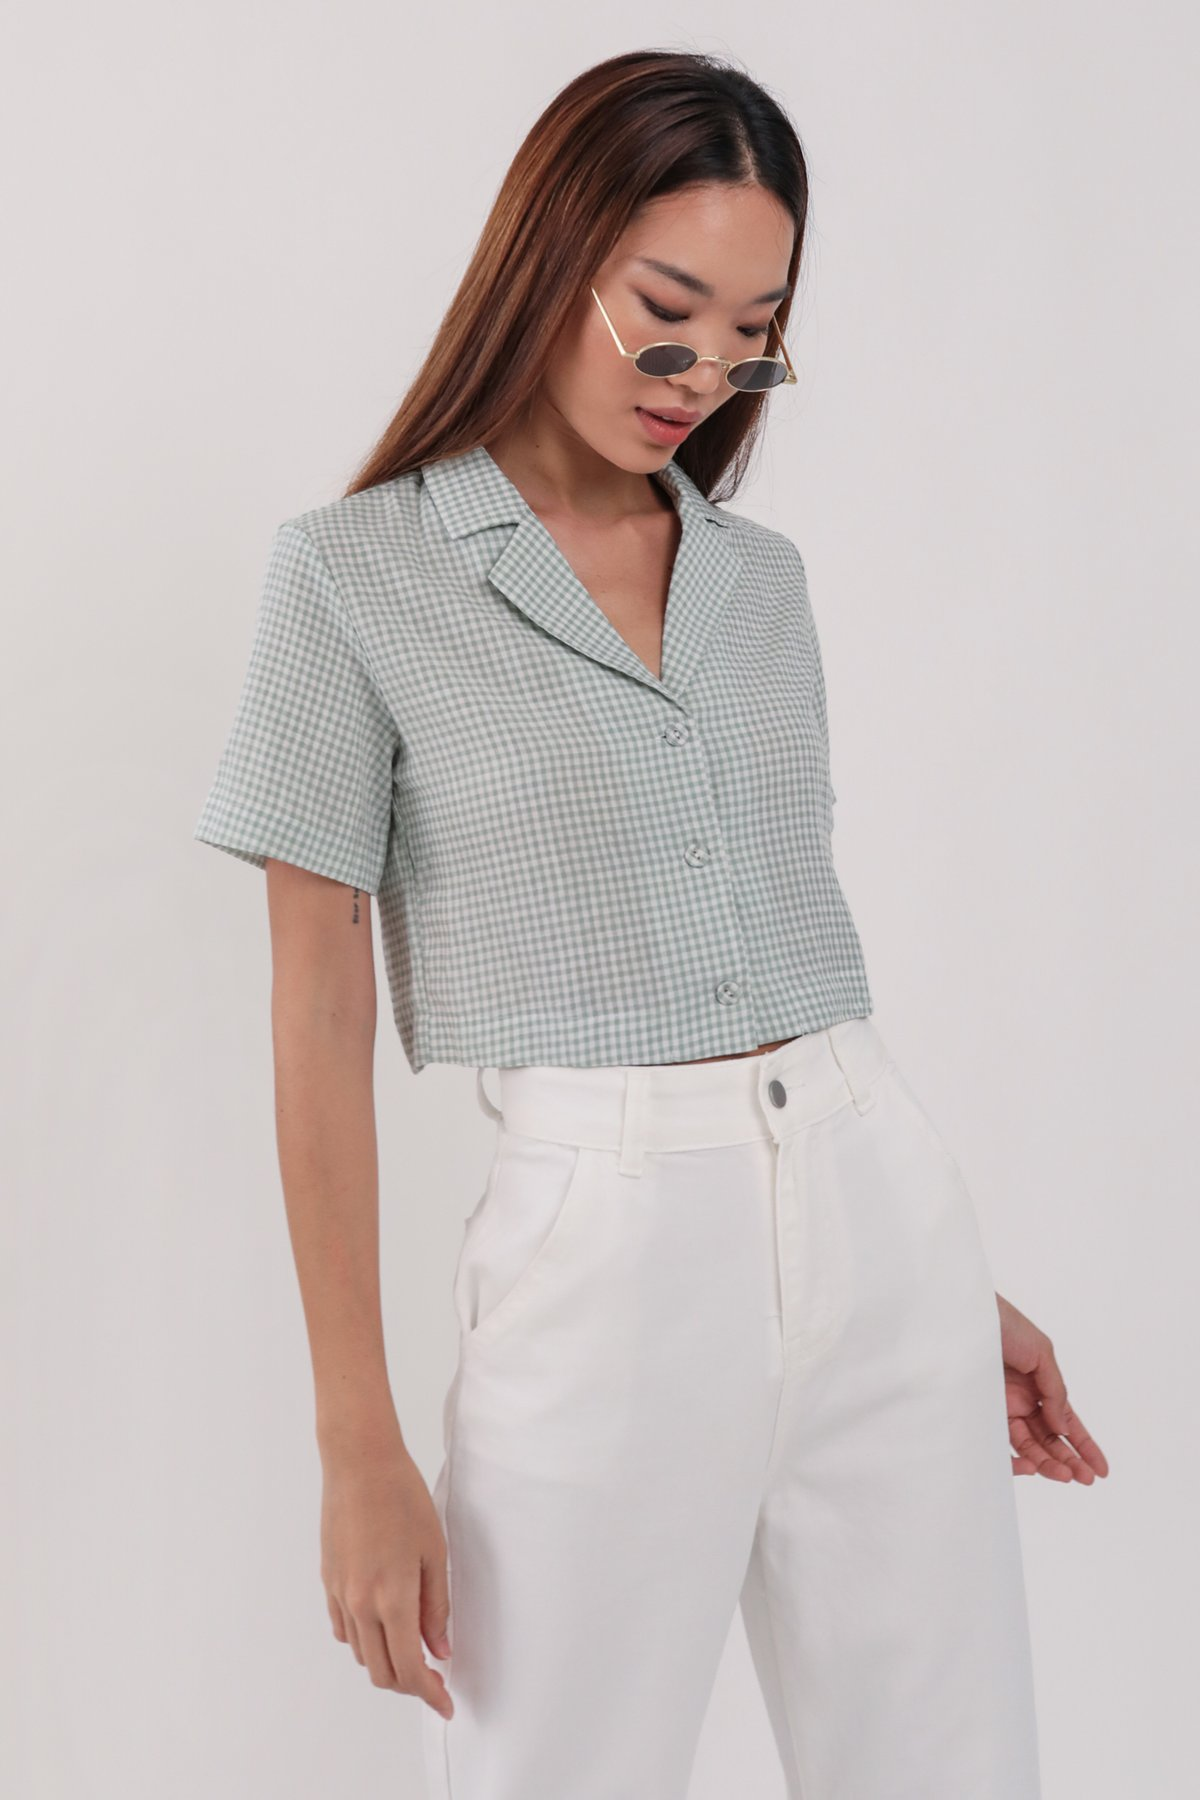 Parco Collared Top (Gingham)